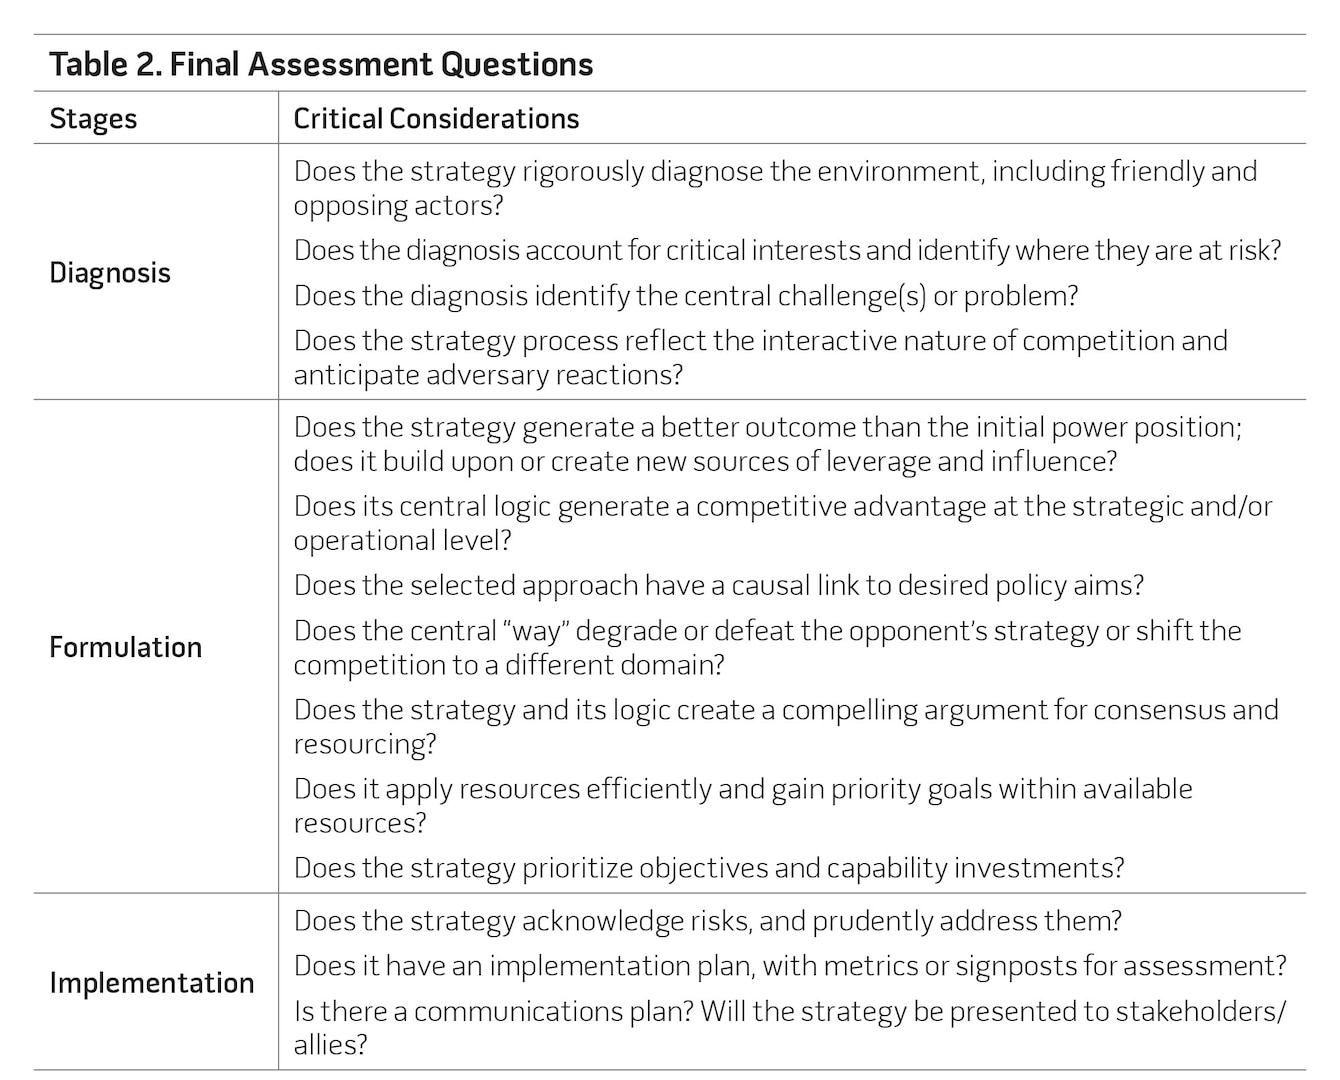 Table 2. Final Assessment Questions